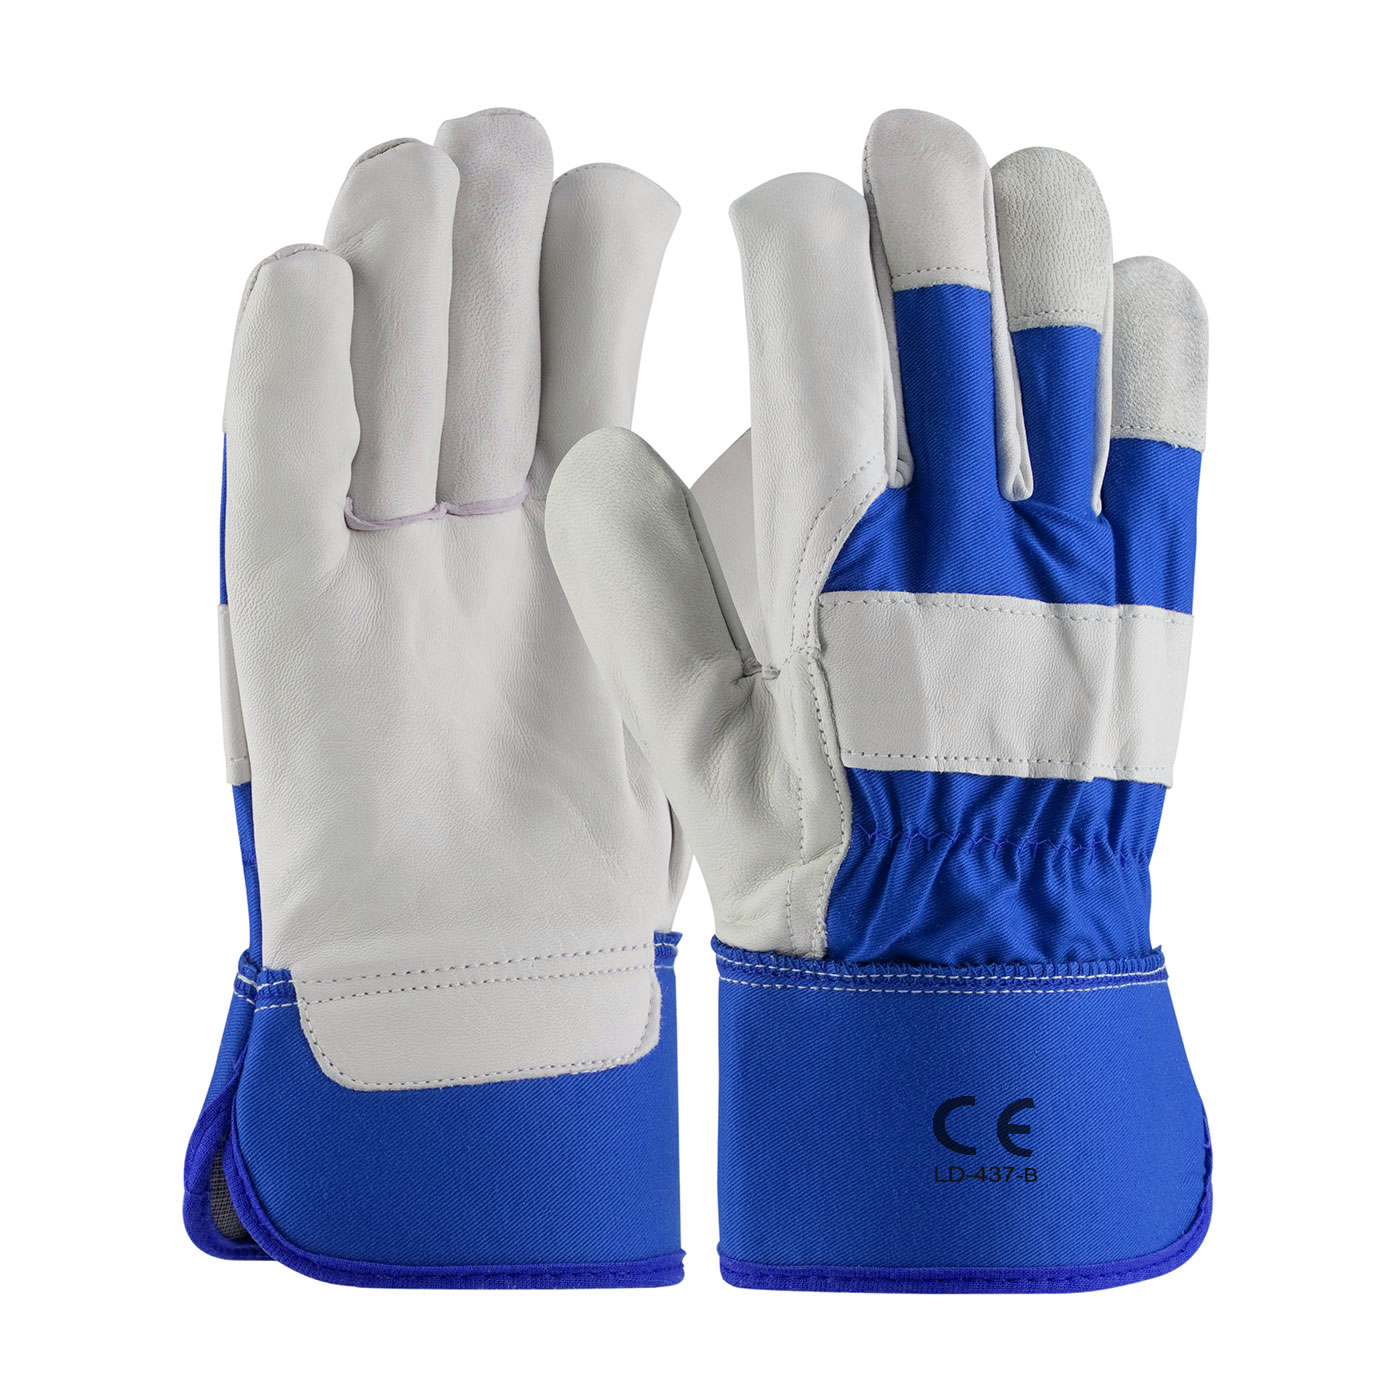 LD-437-B Canadian Work Gloves